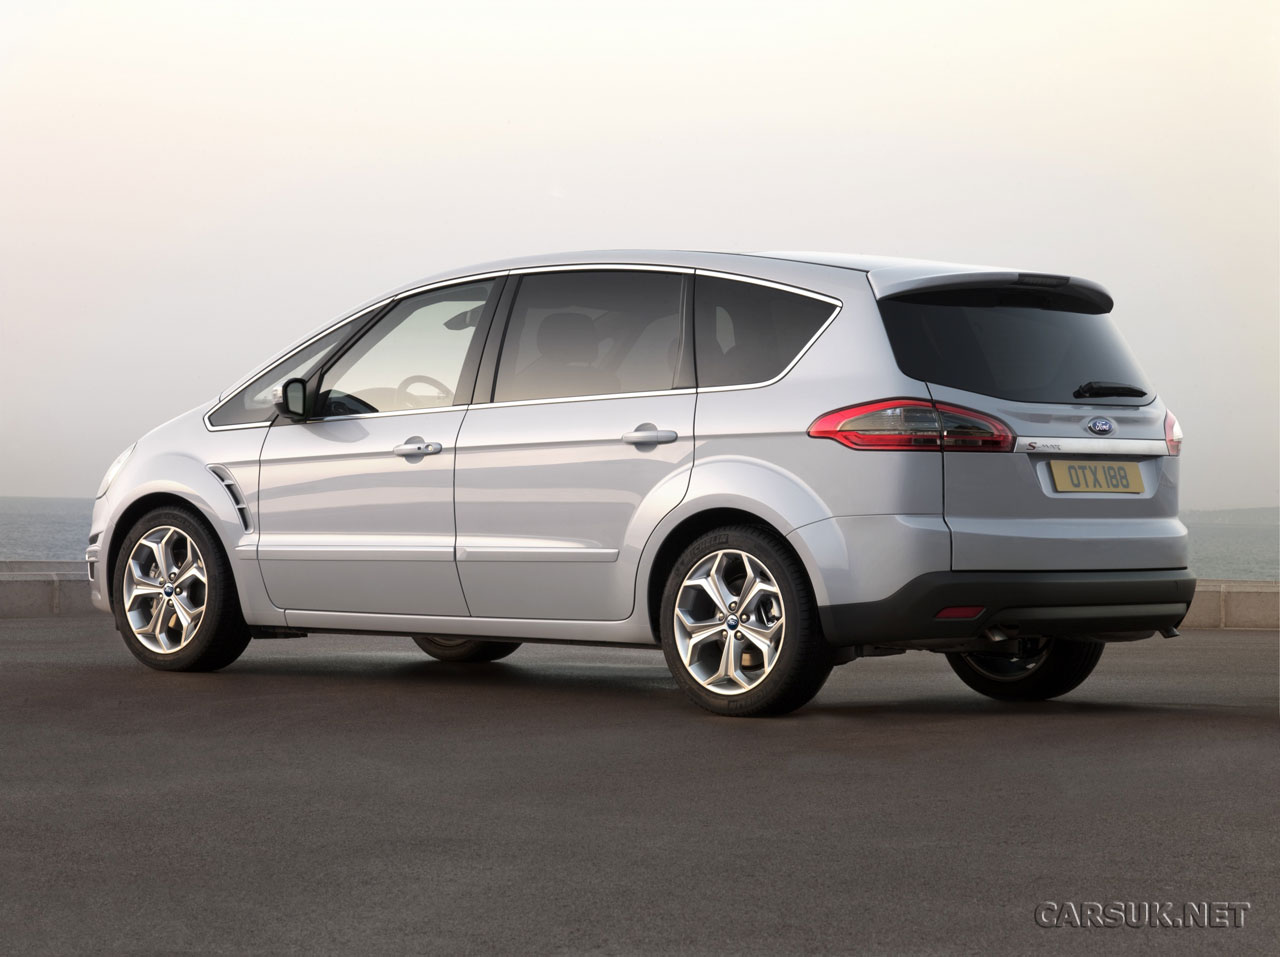 Ford S-Max 1.8 2010 photo - 1